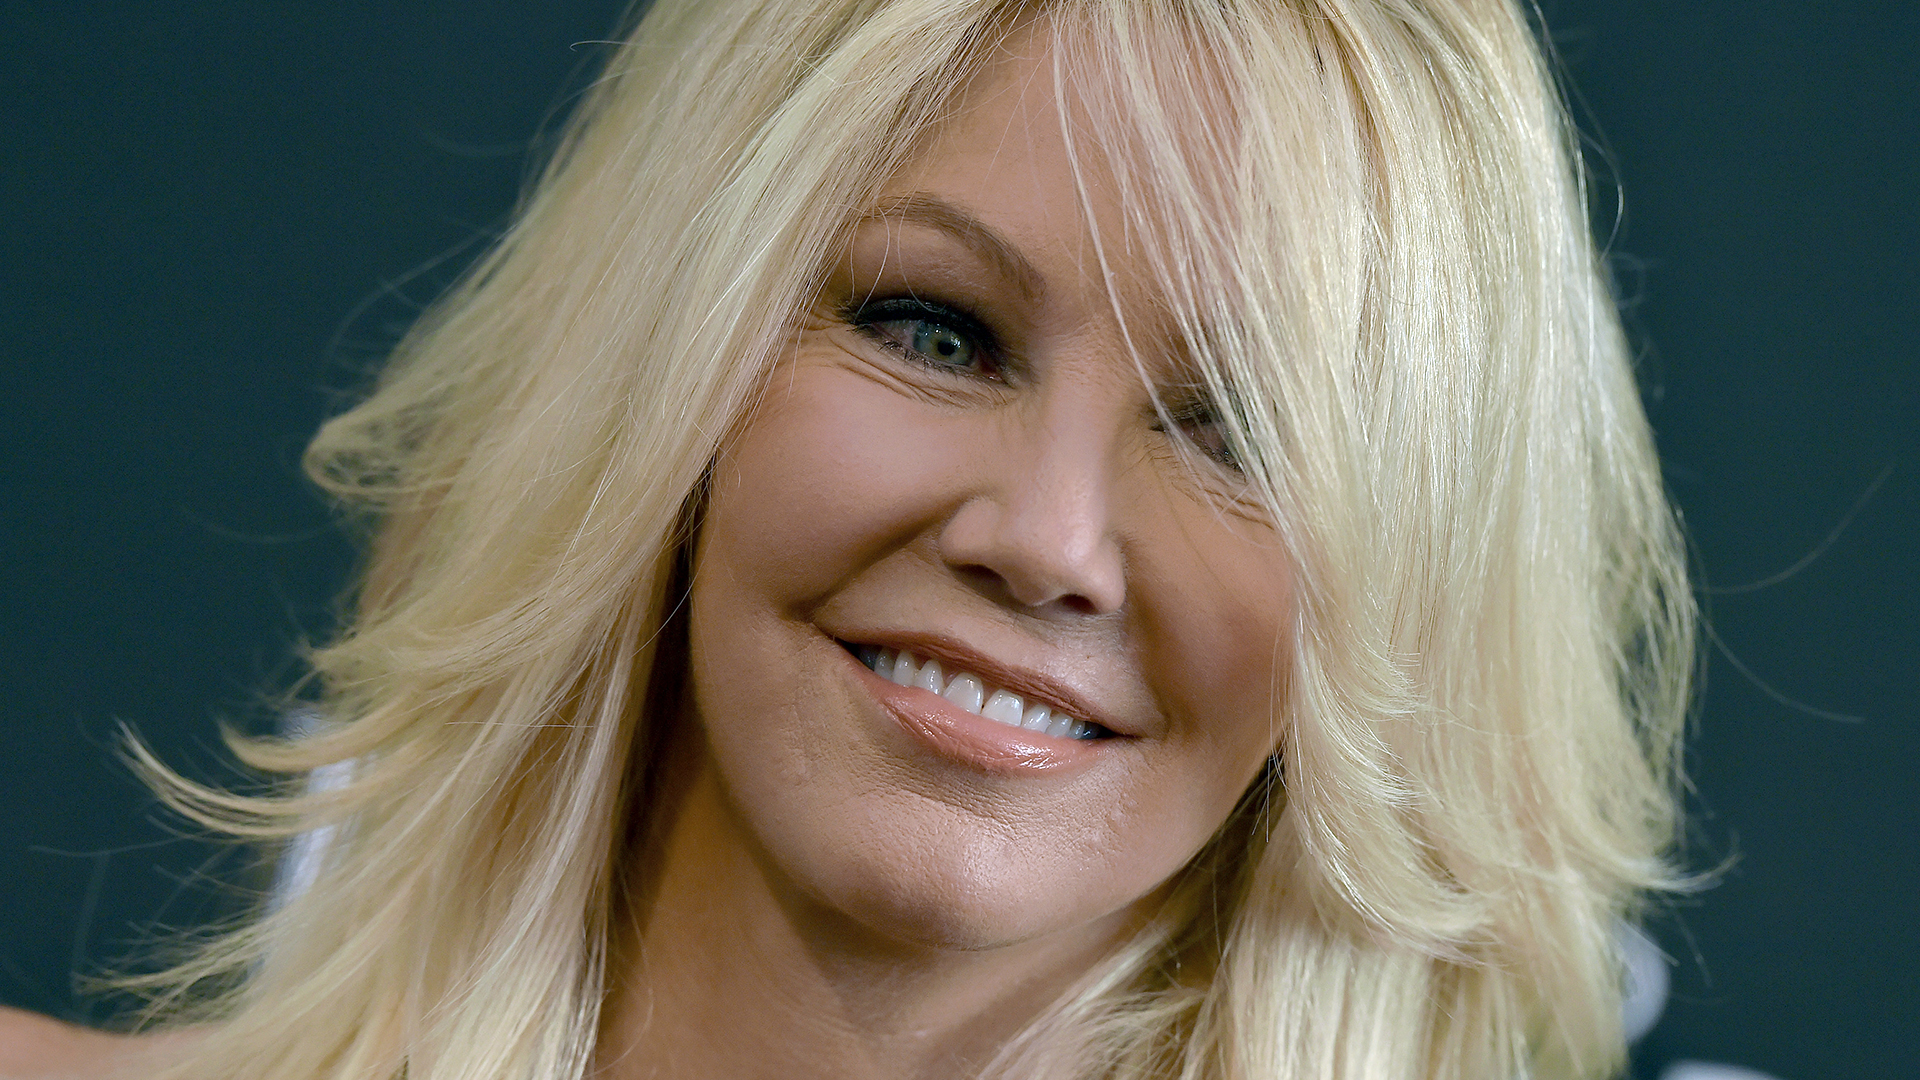 heather locklear home from hospital after car crash scare